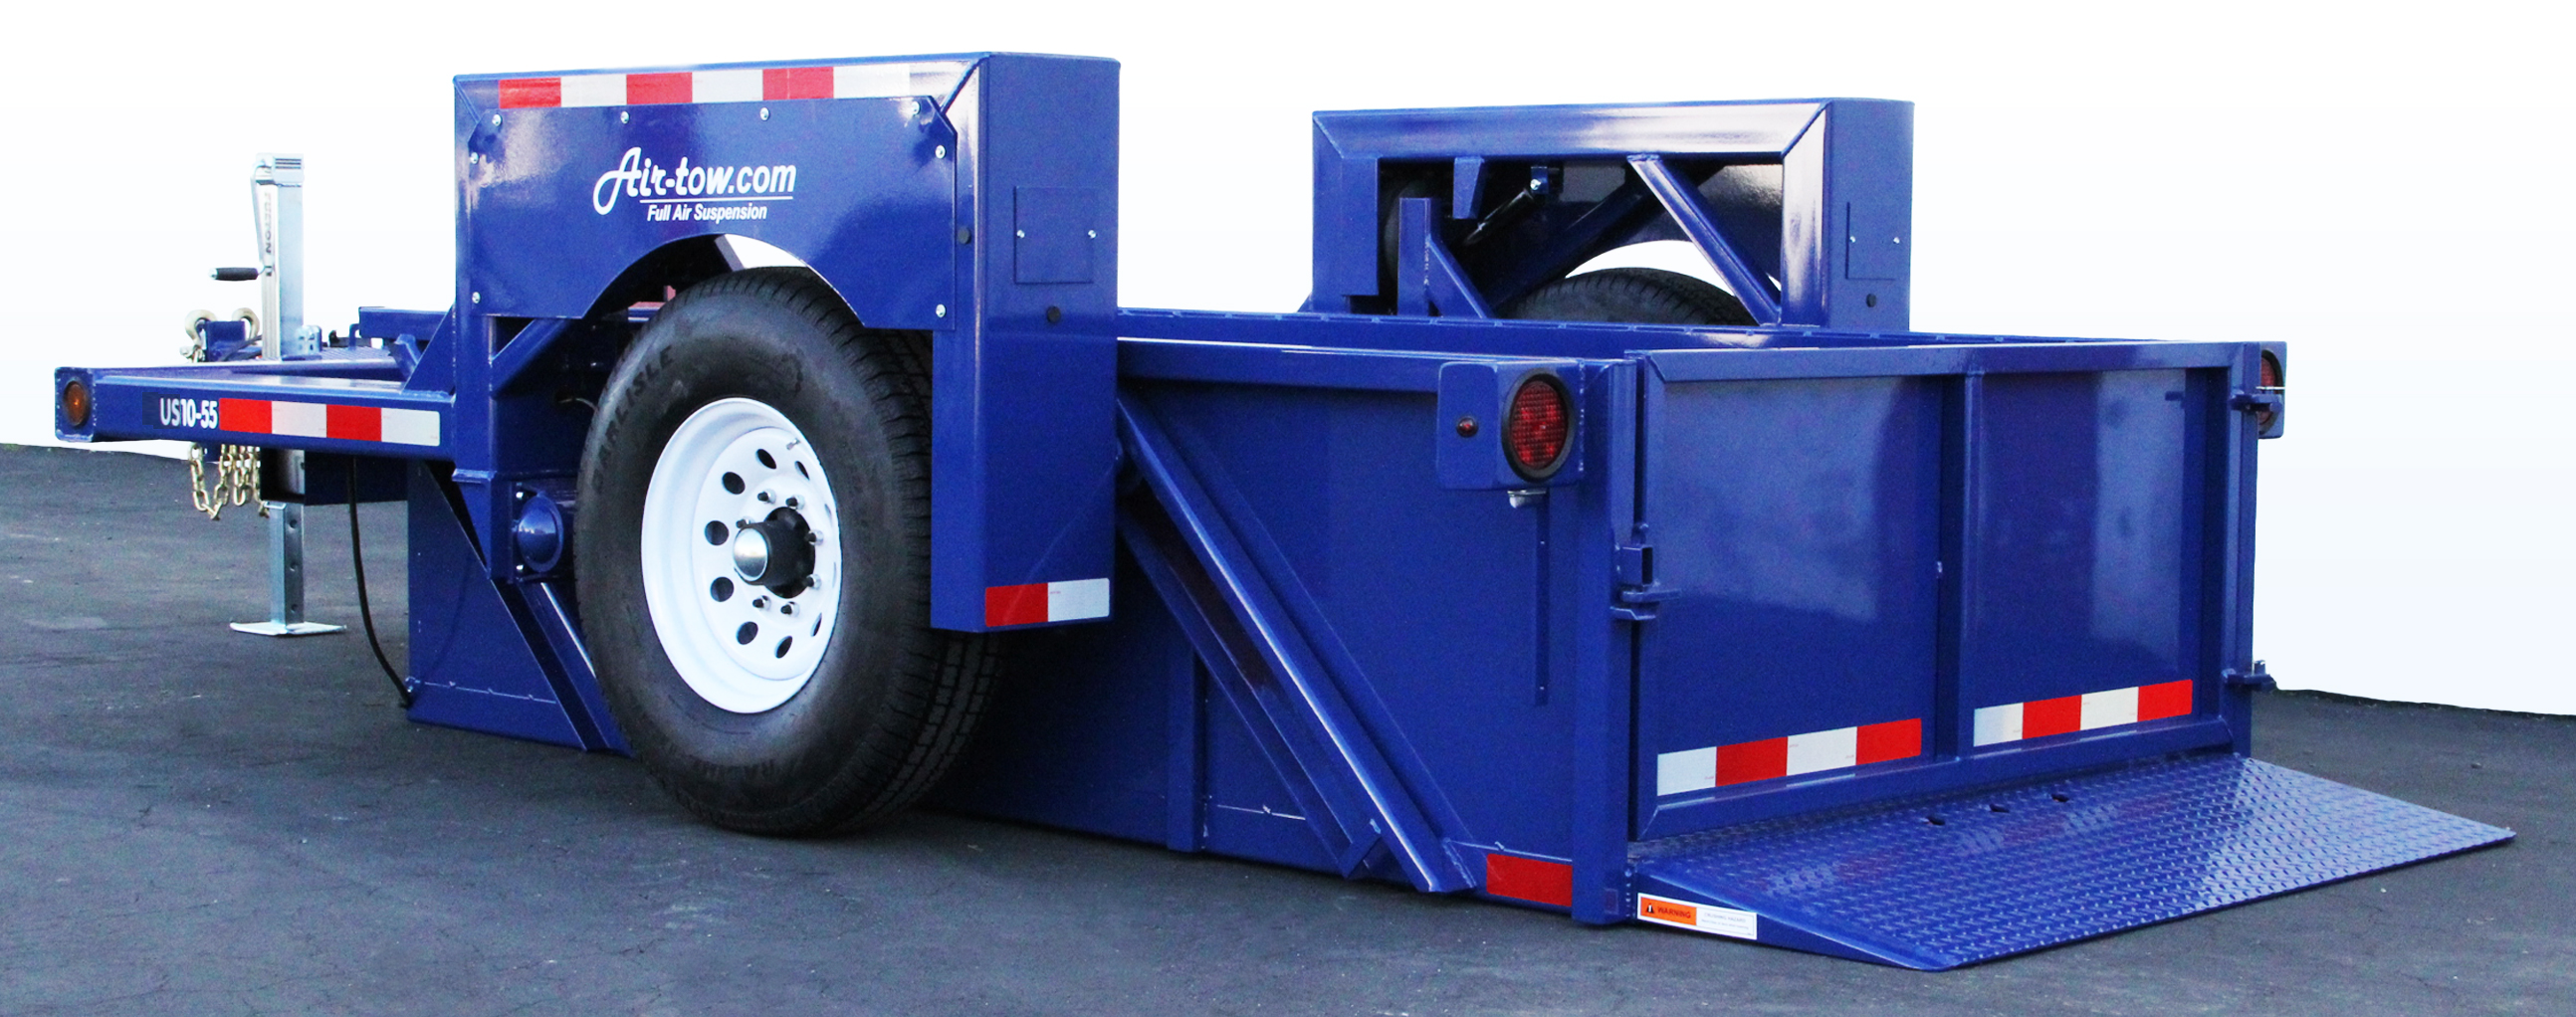 AirtowTrailers_HeaderImage_Utility_US1055.jpg